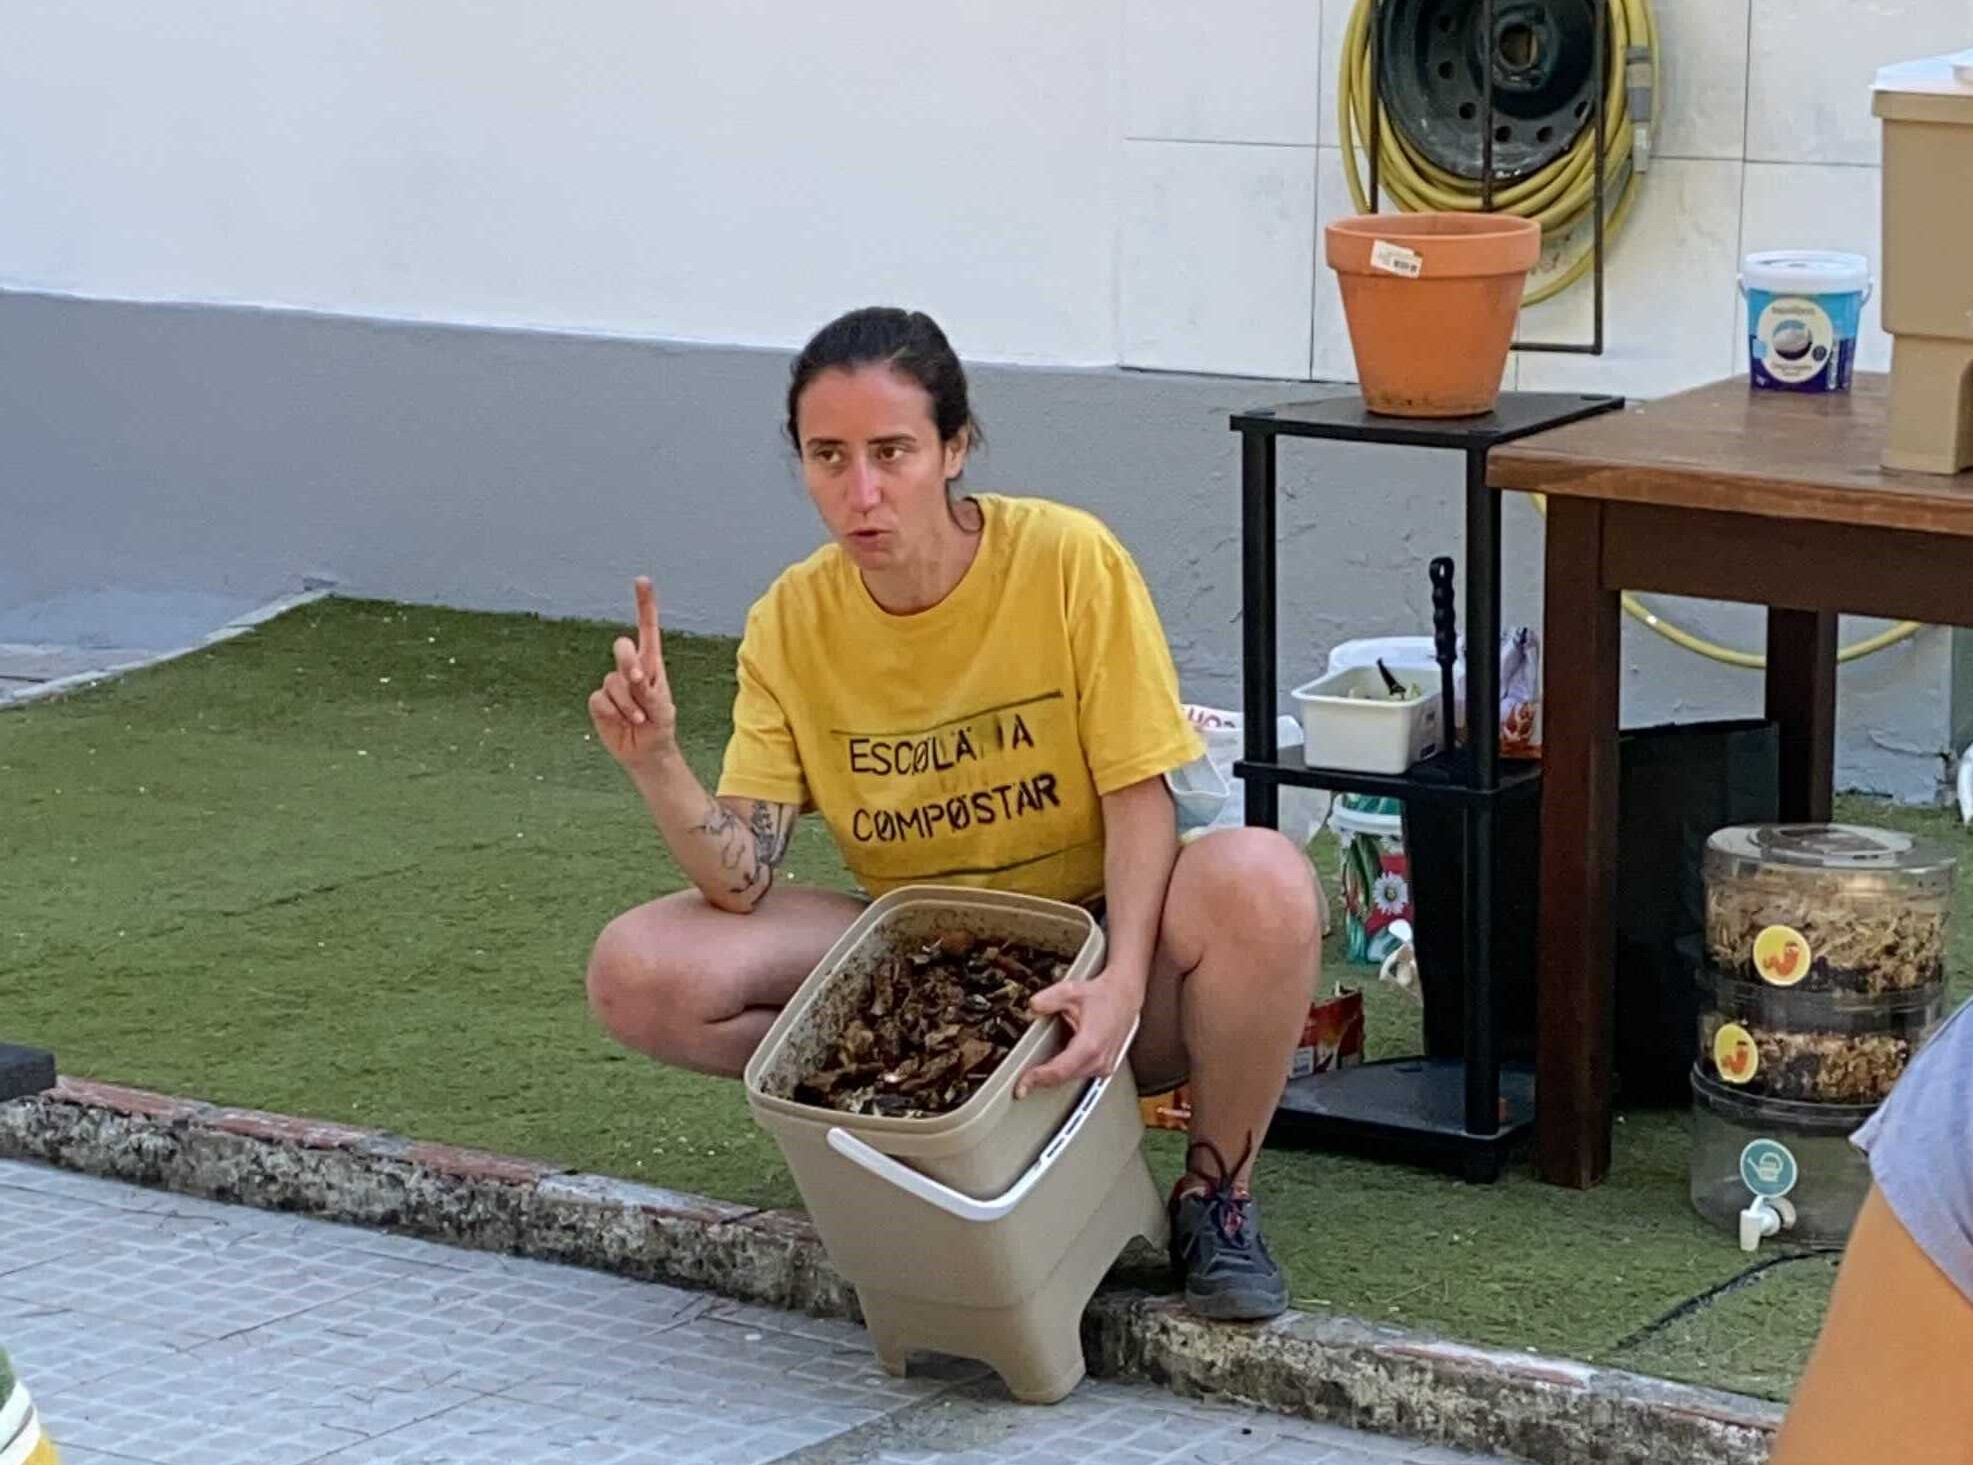 Bokashi Organko was attended the school of composting